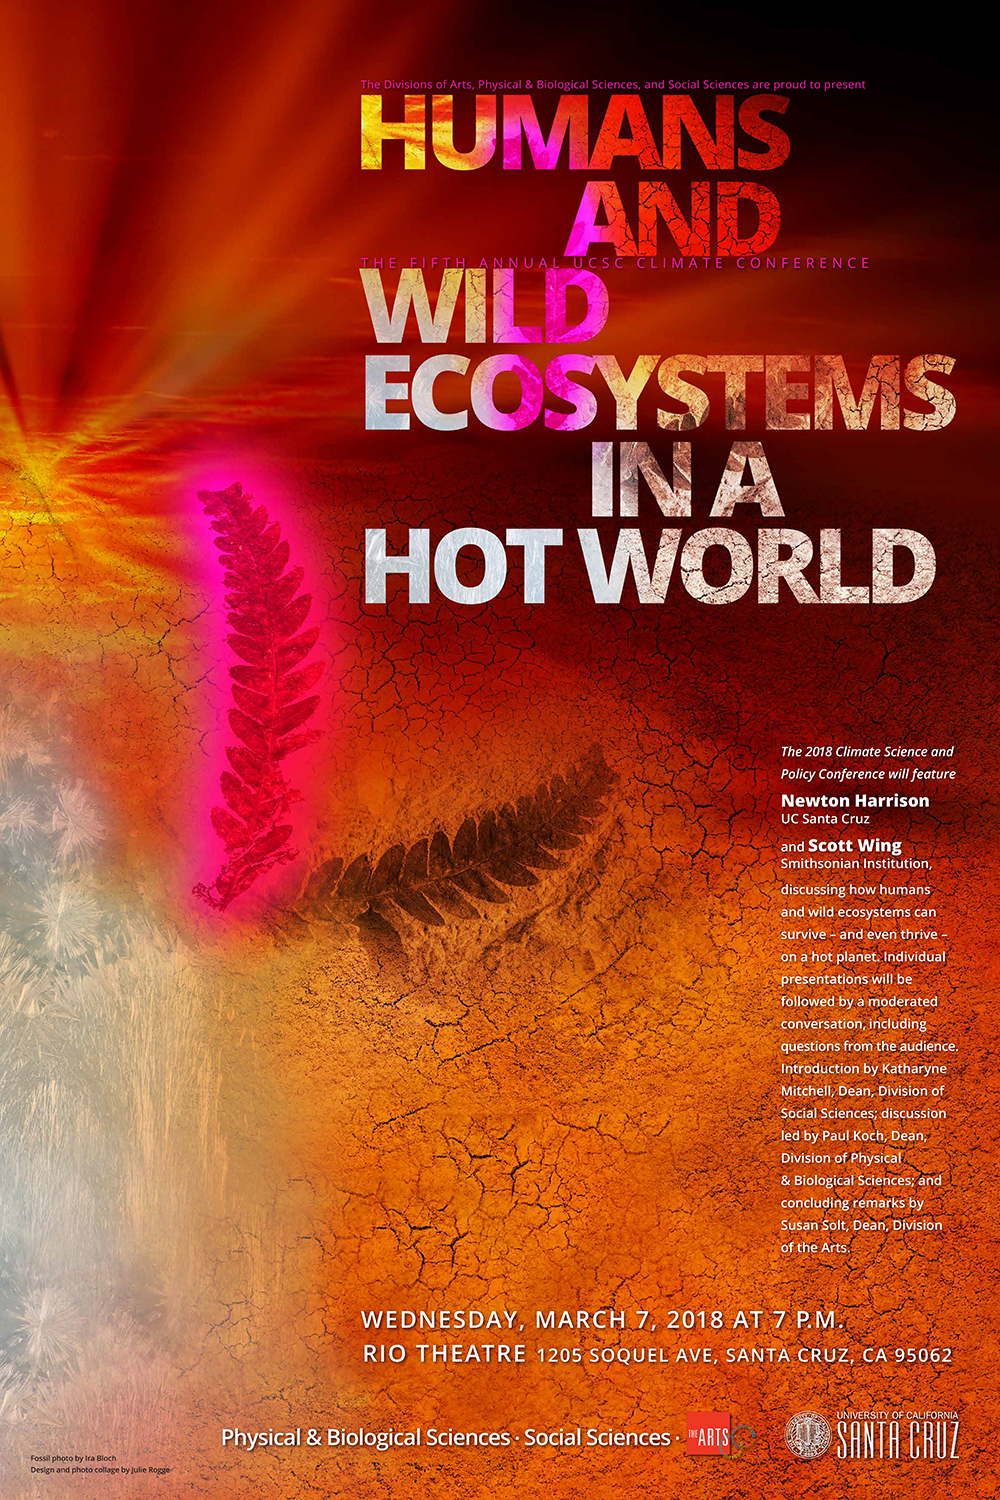 Humans and Wild Ecosystems in a Hot World poster